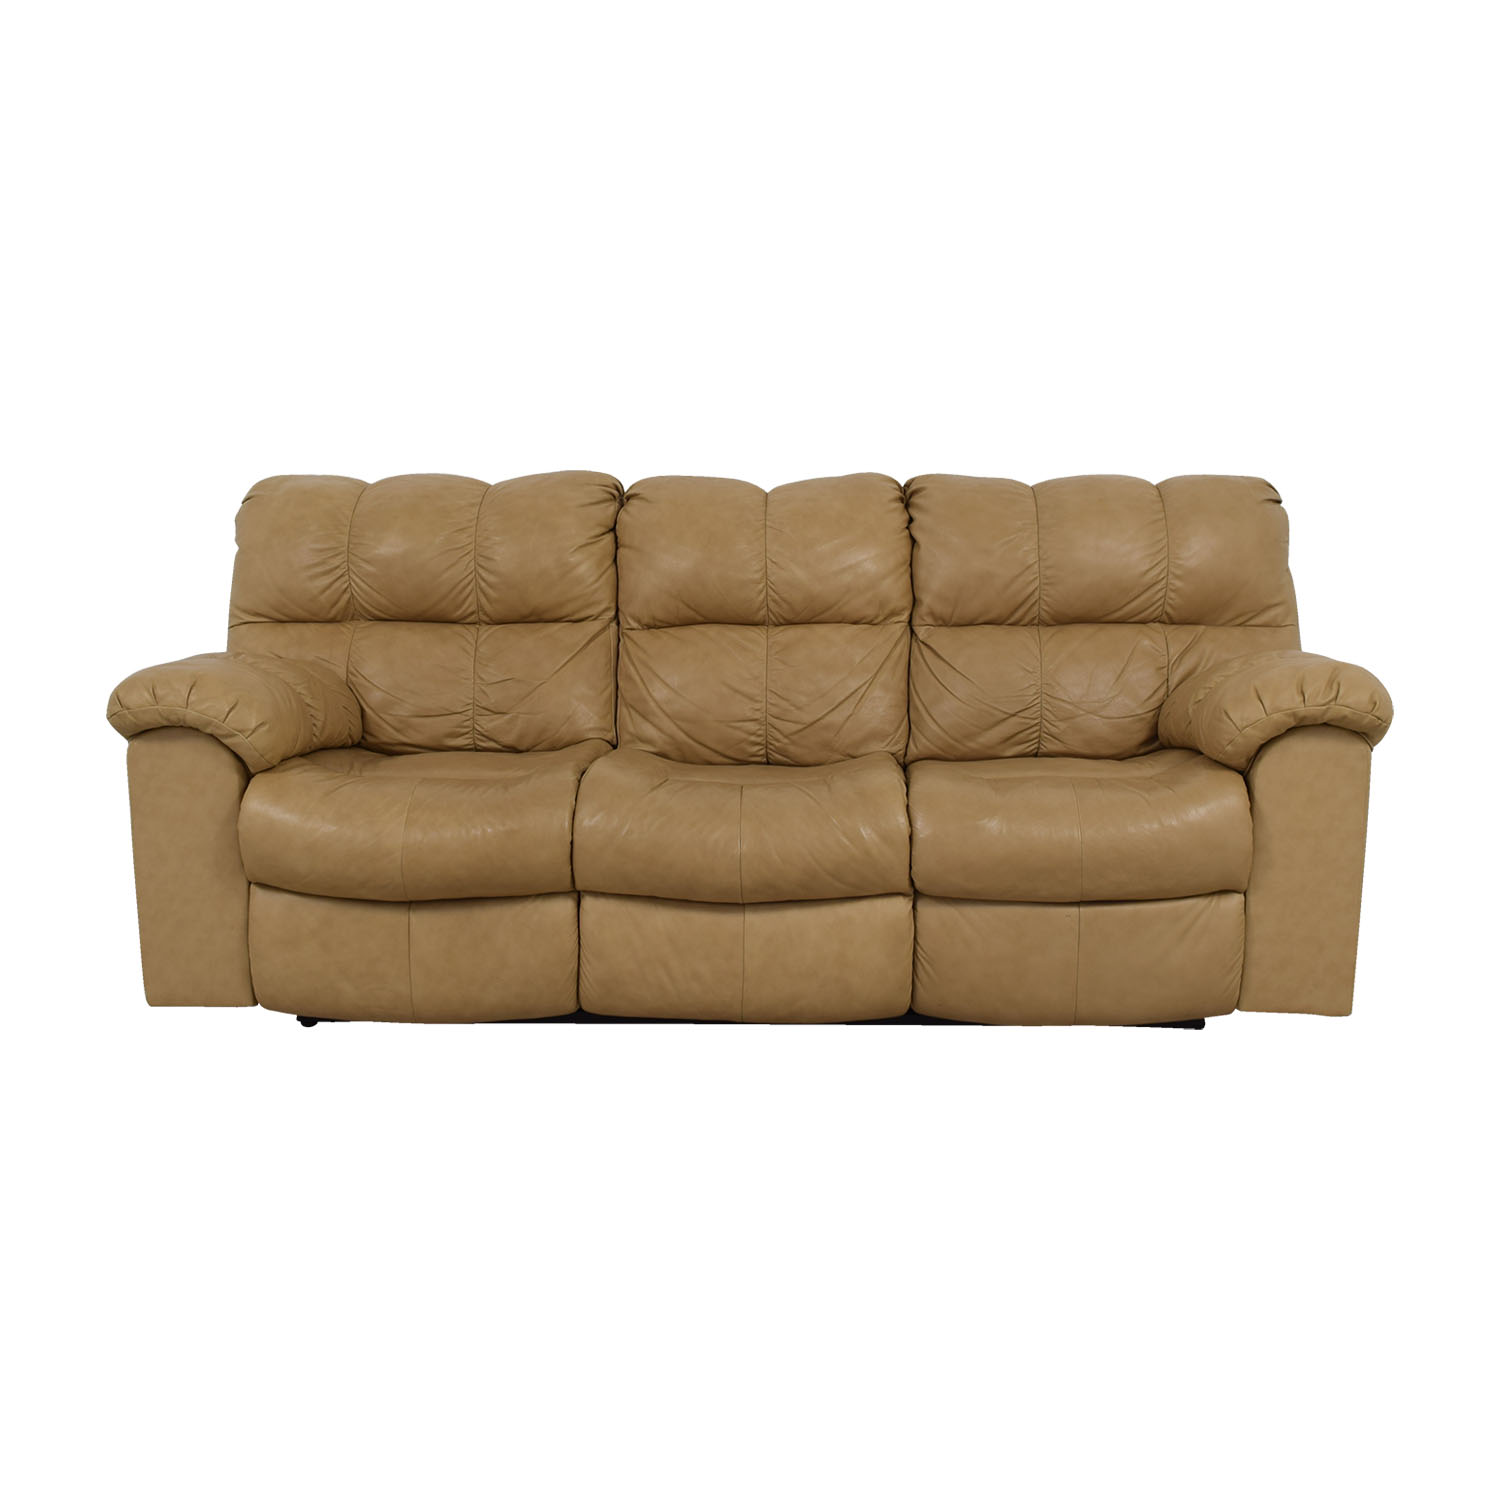 Signature sofa moda 2 piece sofa mushroom american for Signature furniture